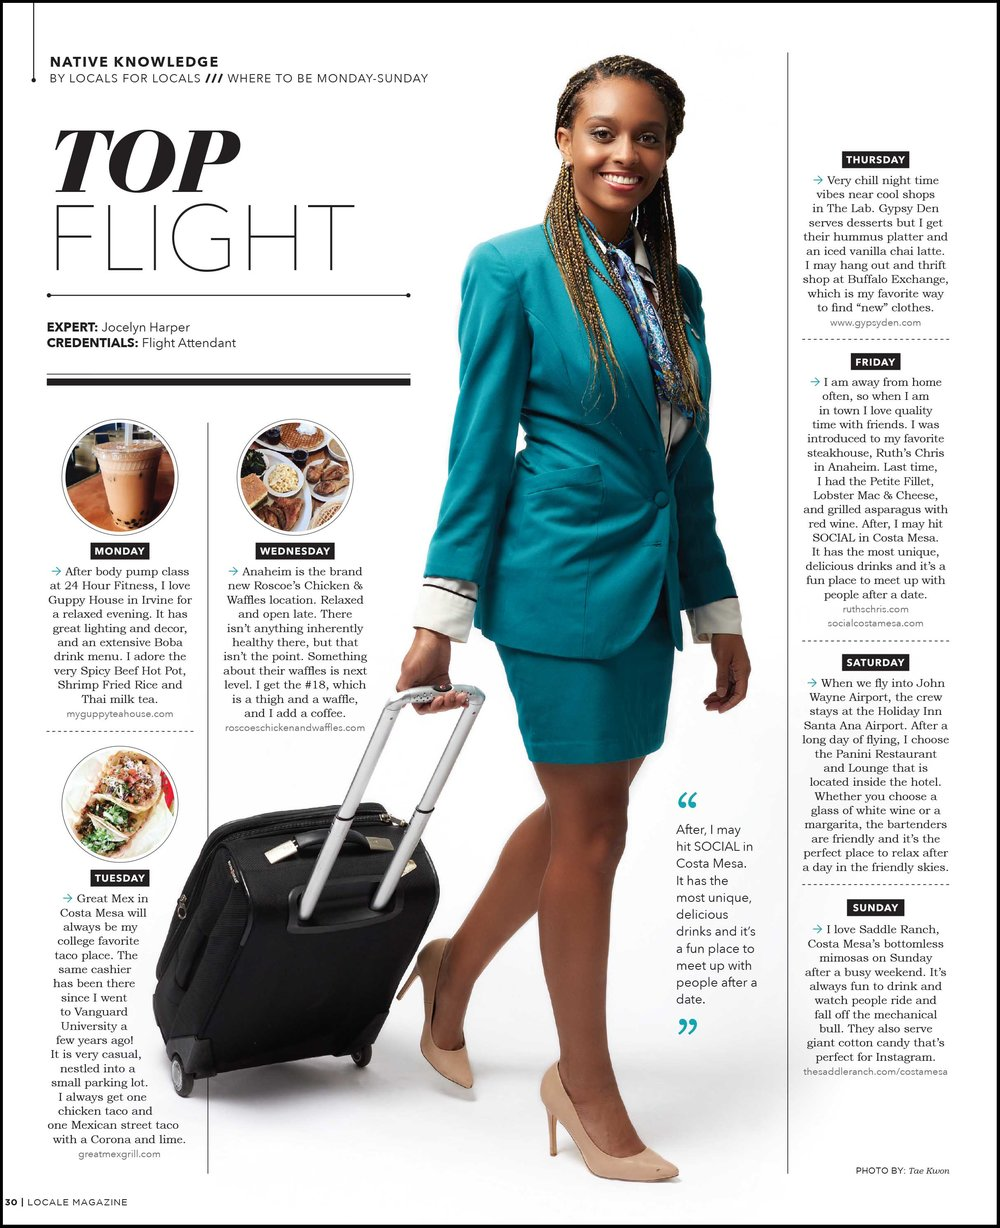 Jocelyn Harper: Flight Attendant